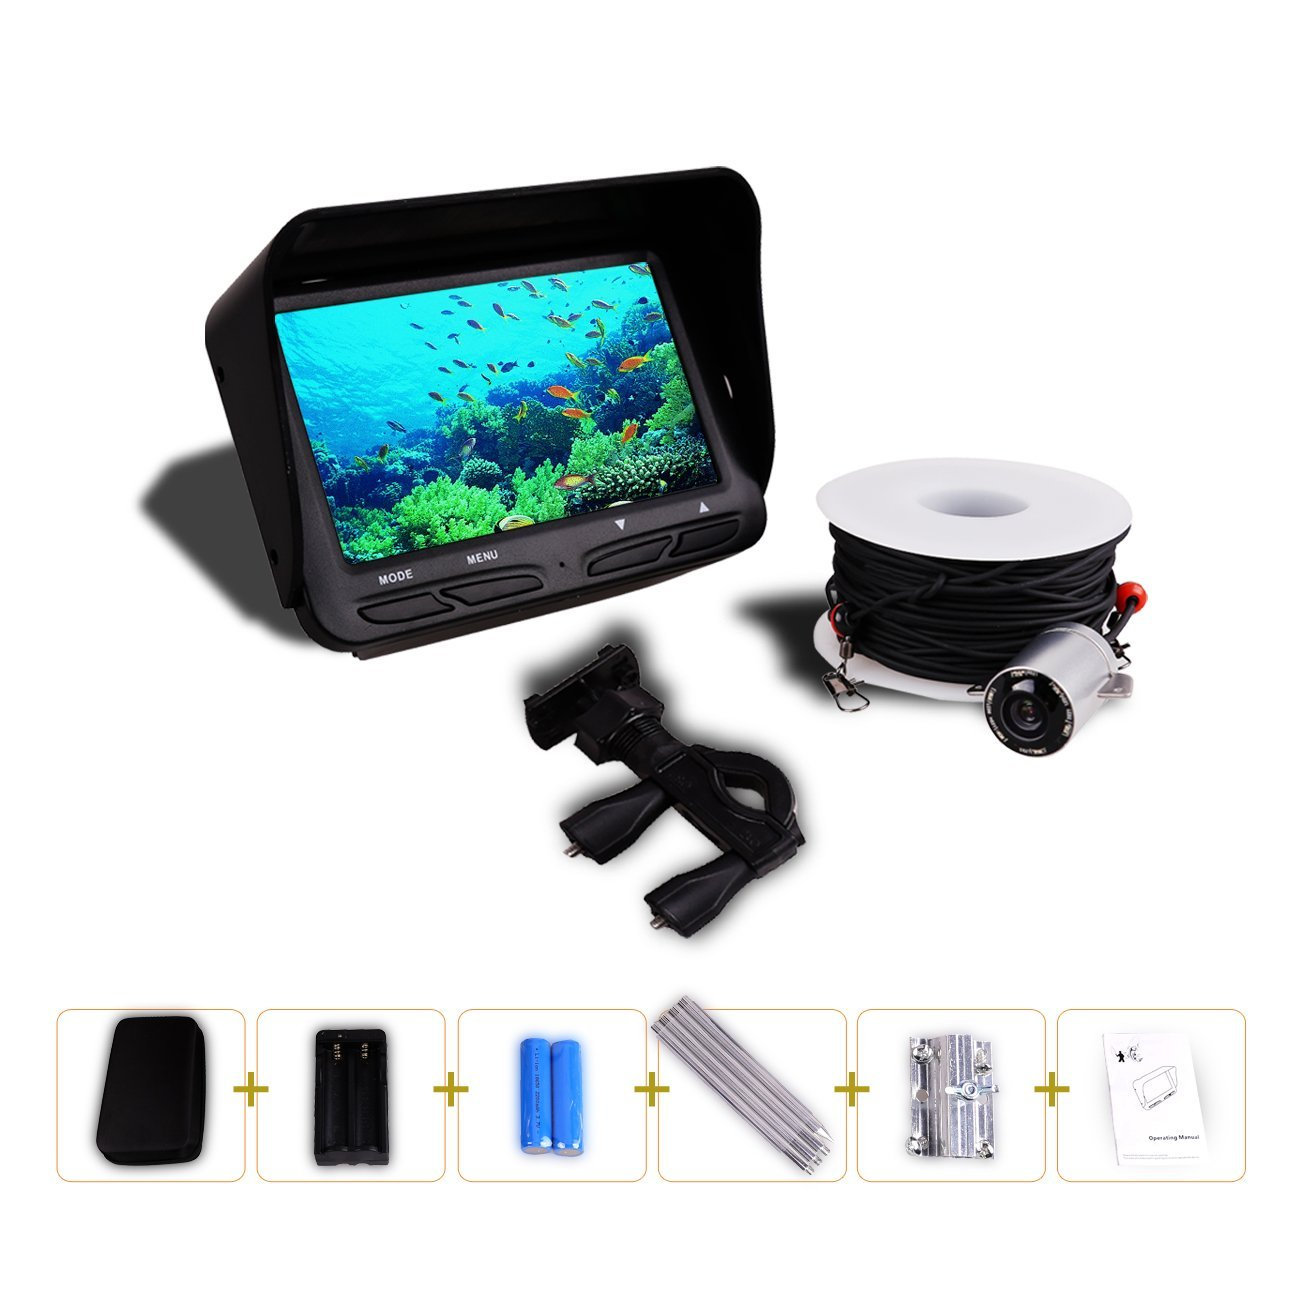 HBUDS Fishing Finder , 4.3 inch TFT LCD Fishing Underwater Camera 140 Degree Wide Angle Lens Monitor for Boat,Ice,Lake Fishing